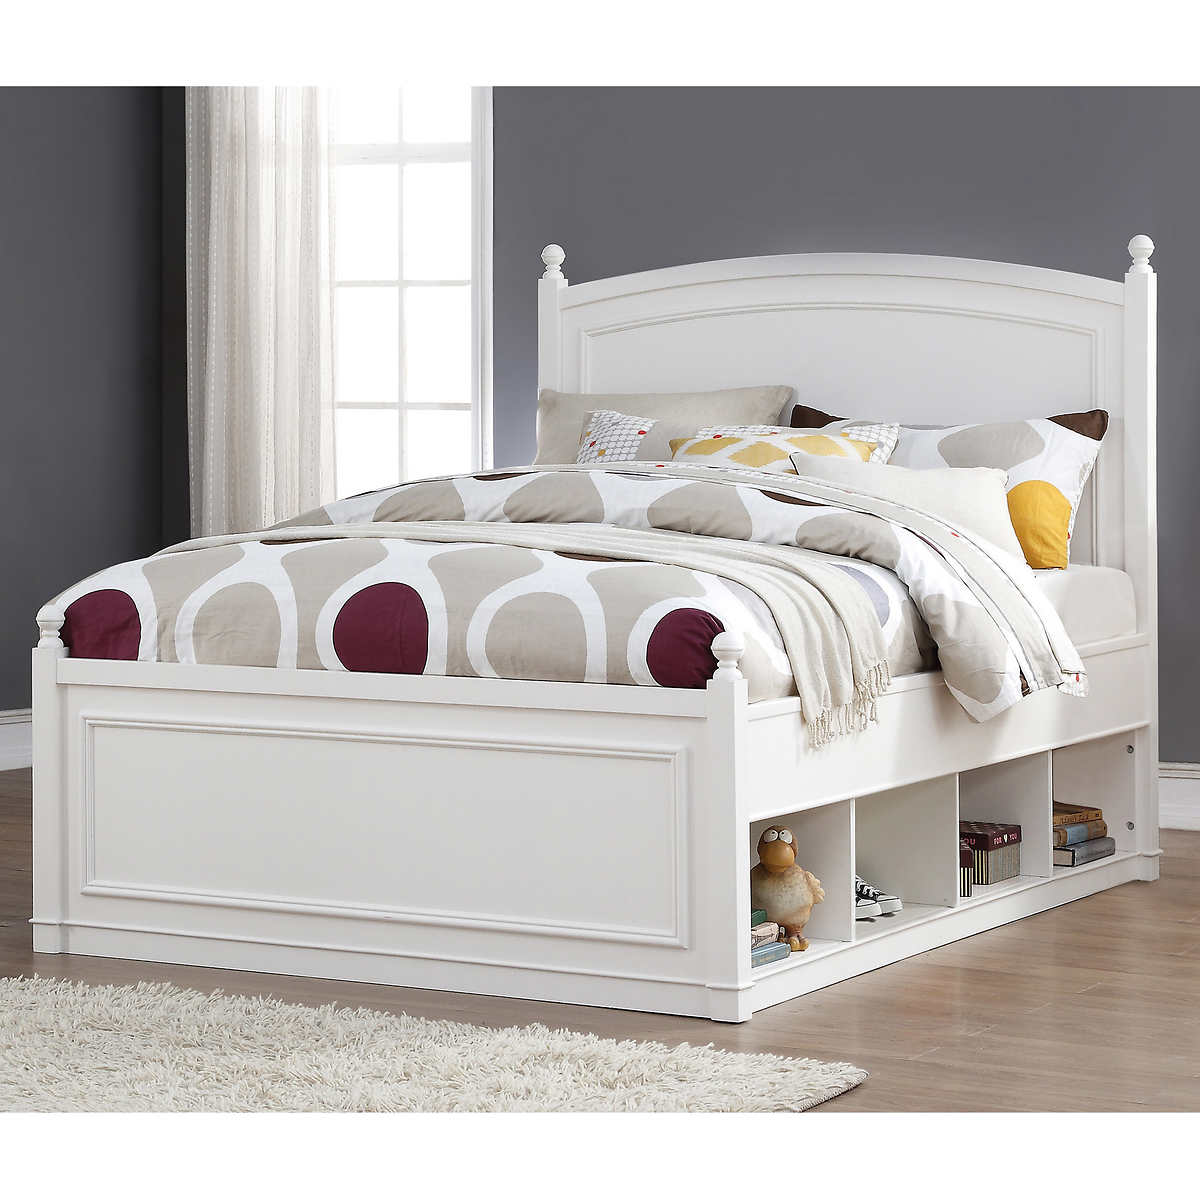 White plastic toddler bed costco - Mila Double Storage Bed